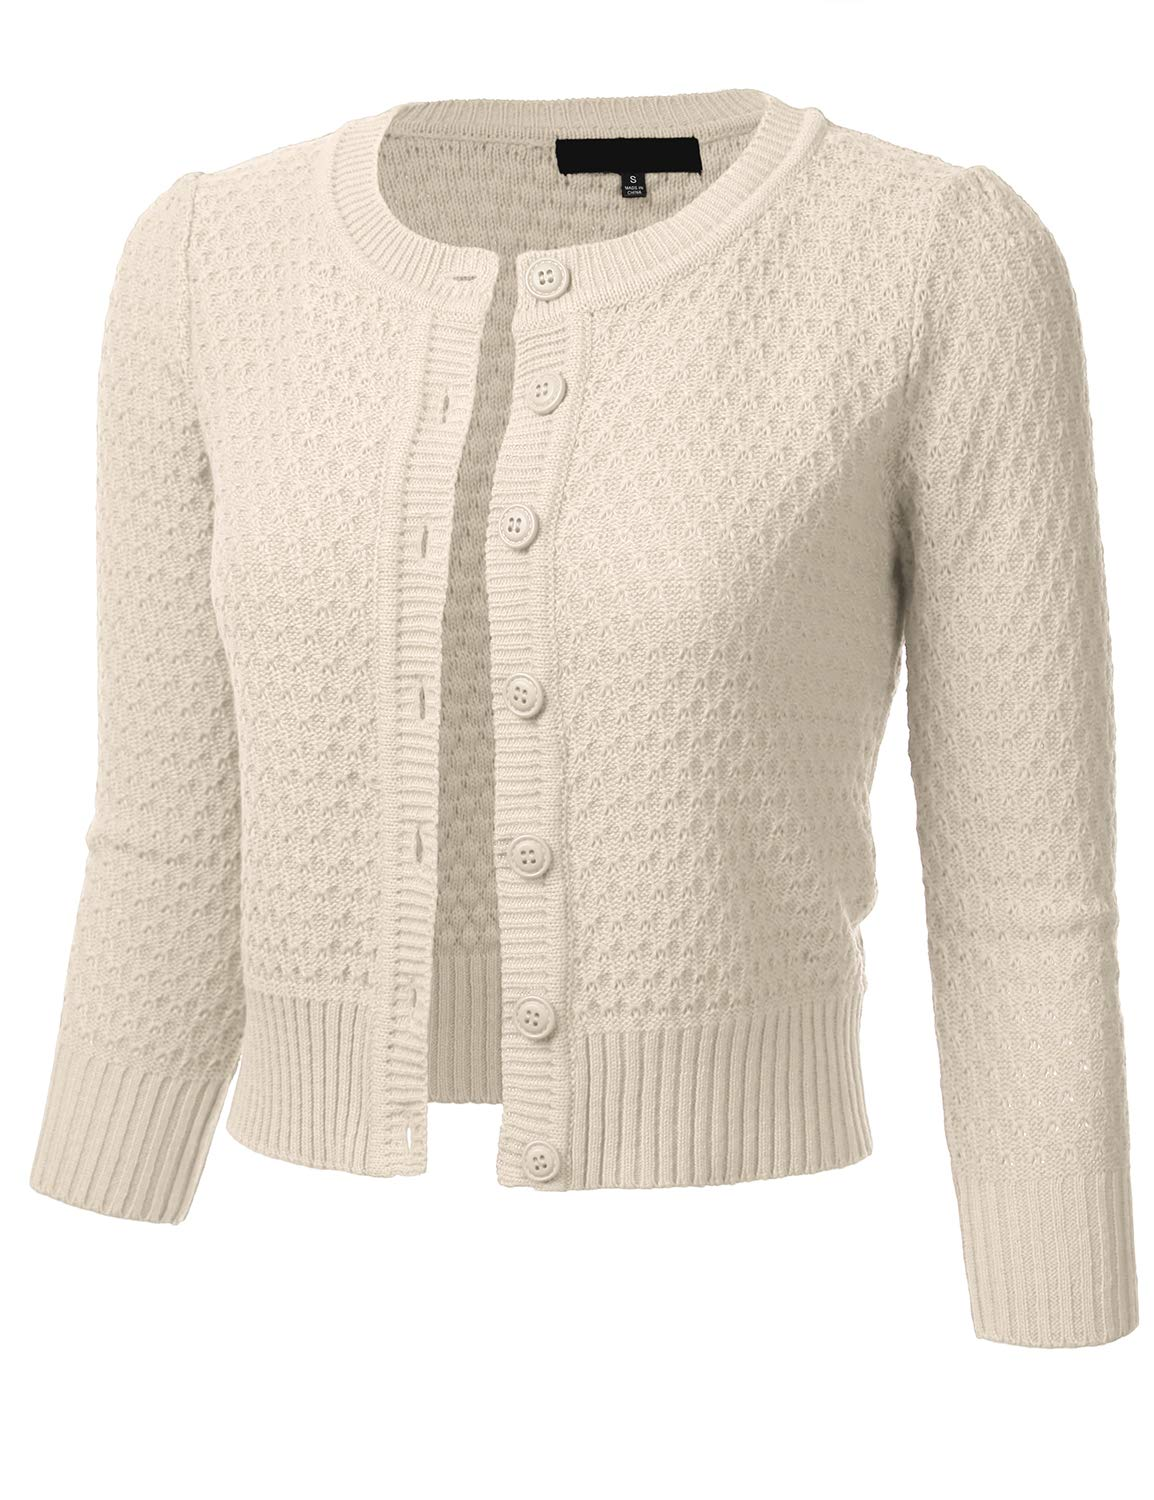 1930s Style Sweaters | Vintage Sweaters FLORIA Womens Button Down 3/4 Sleeve Crew Neck Cotton Knit Cropped Cardigan Sweater (S-3X) $24.99 AT vintagedancer.com